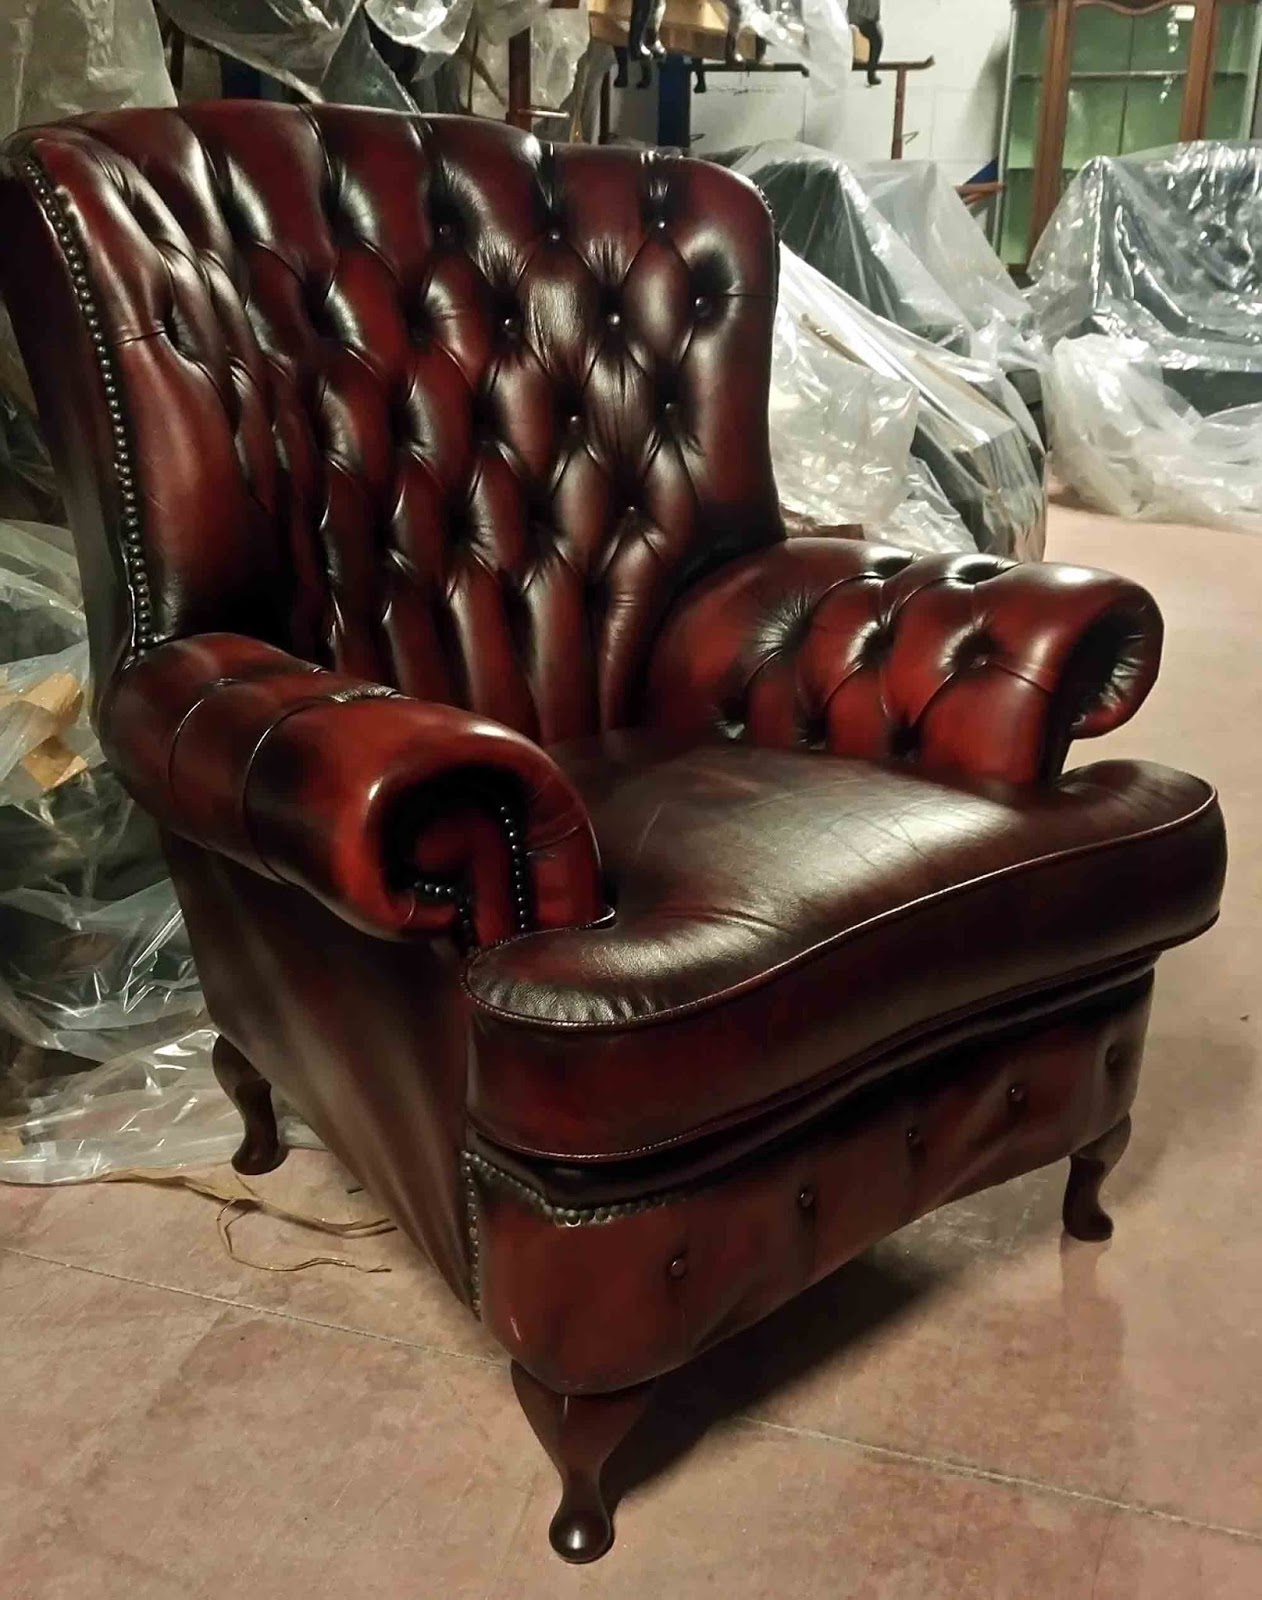 Poltrone Usate In Pelle.Poltrone Chesterfield Vintage Usate